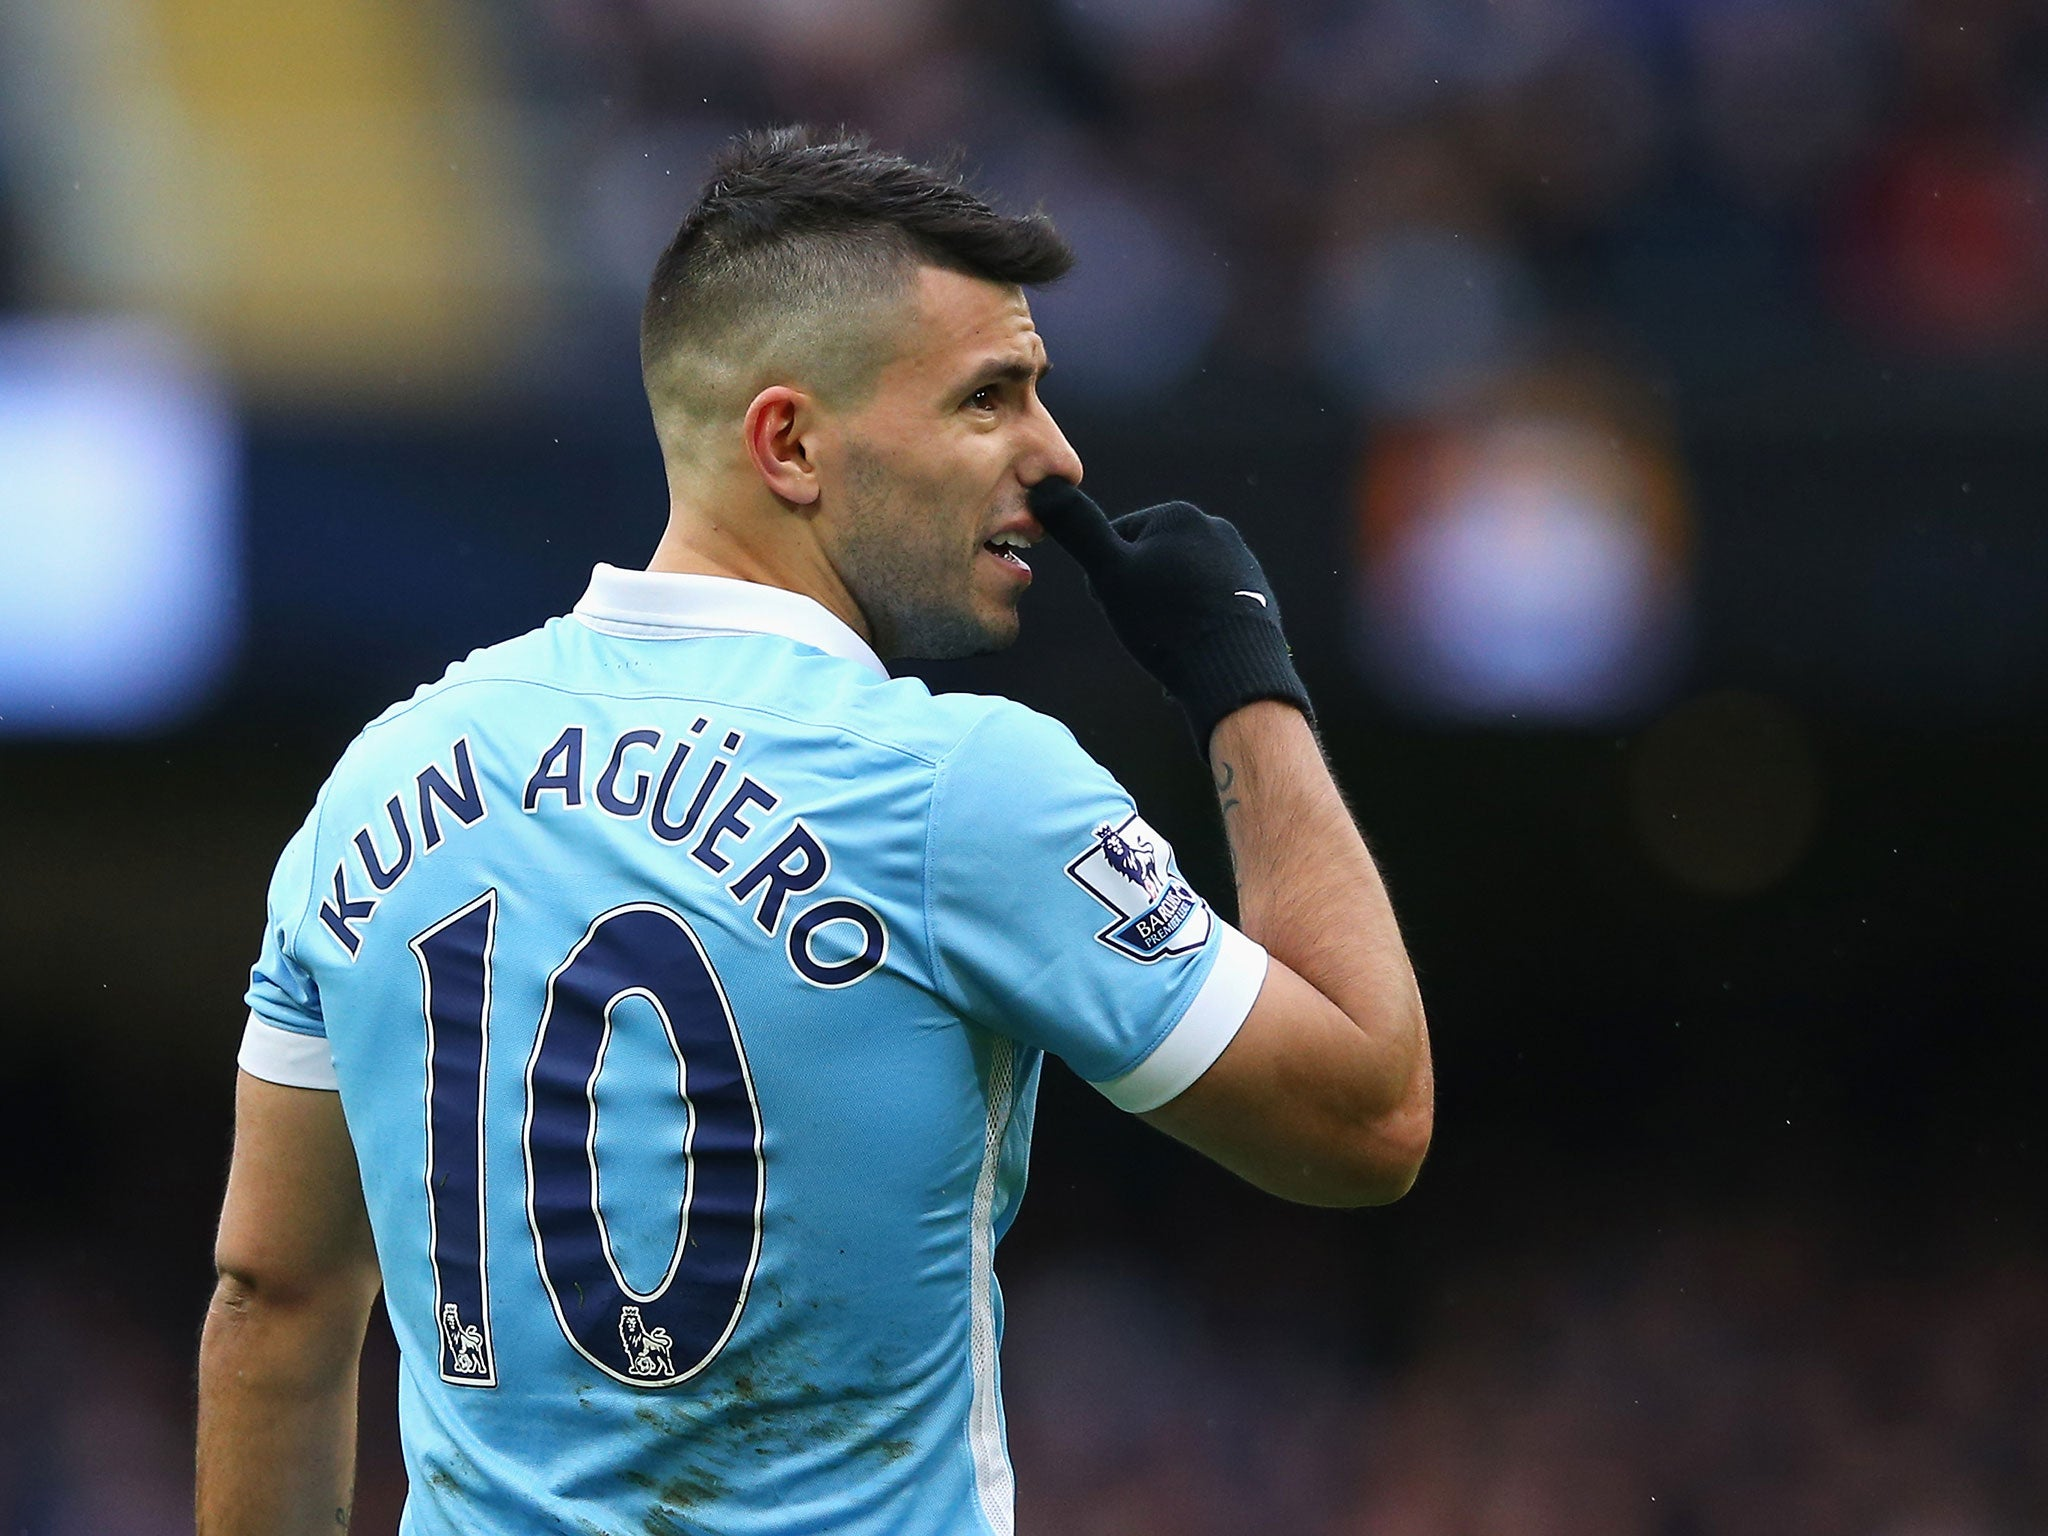 Sergio Aguero happy to stay at Manchester City for rest of career